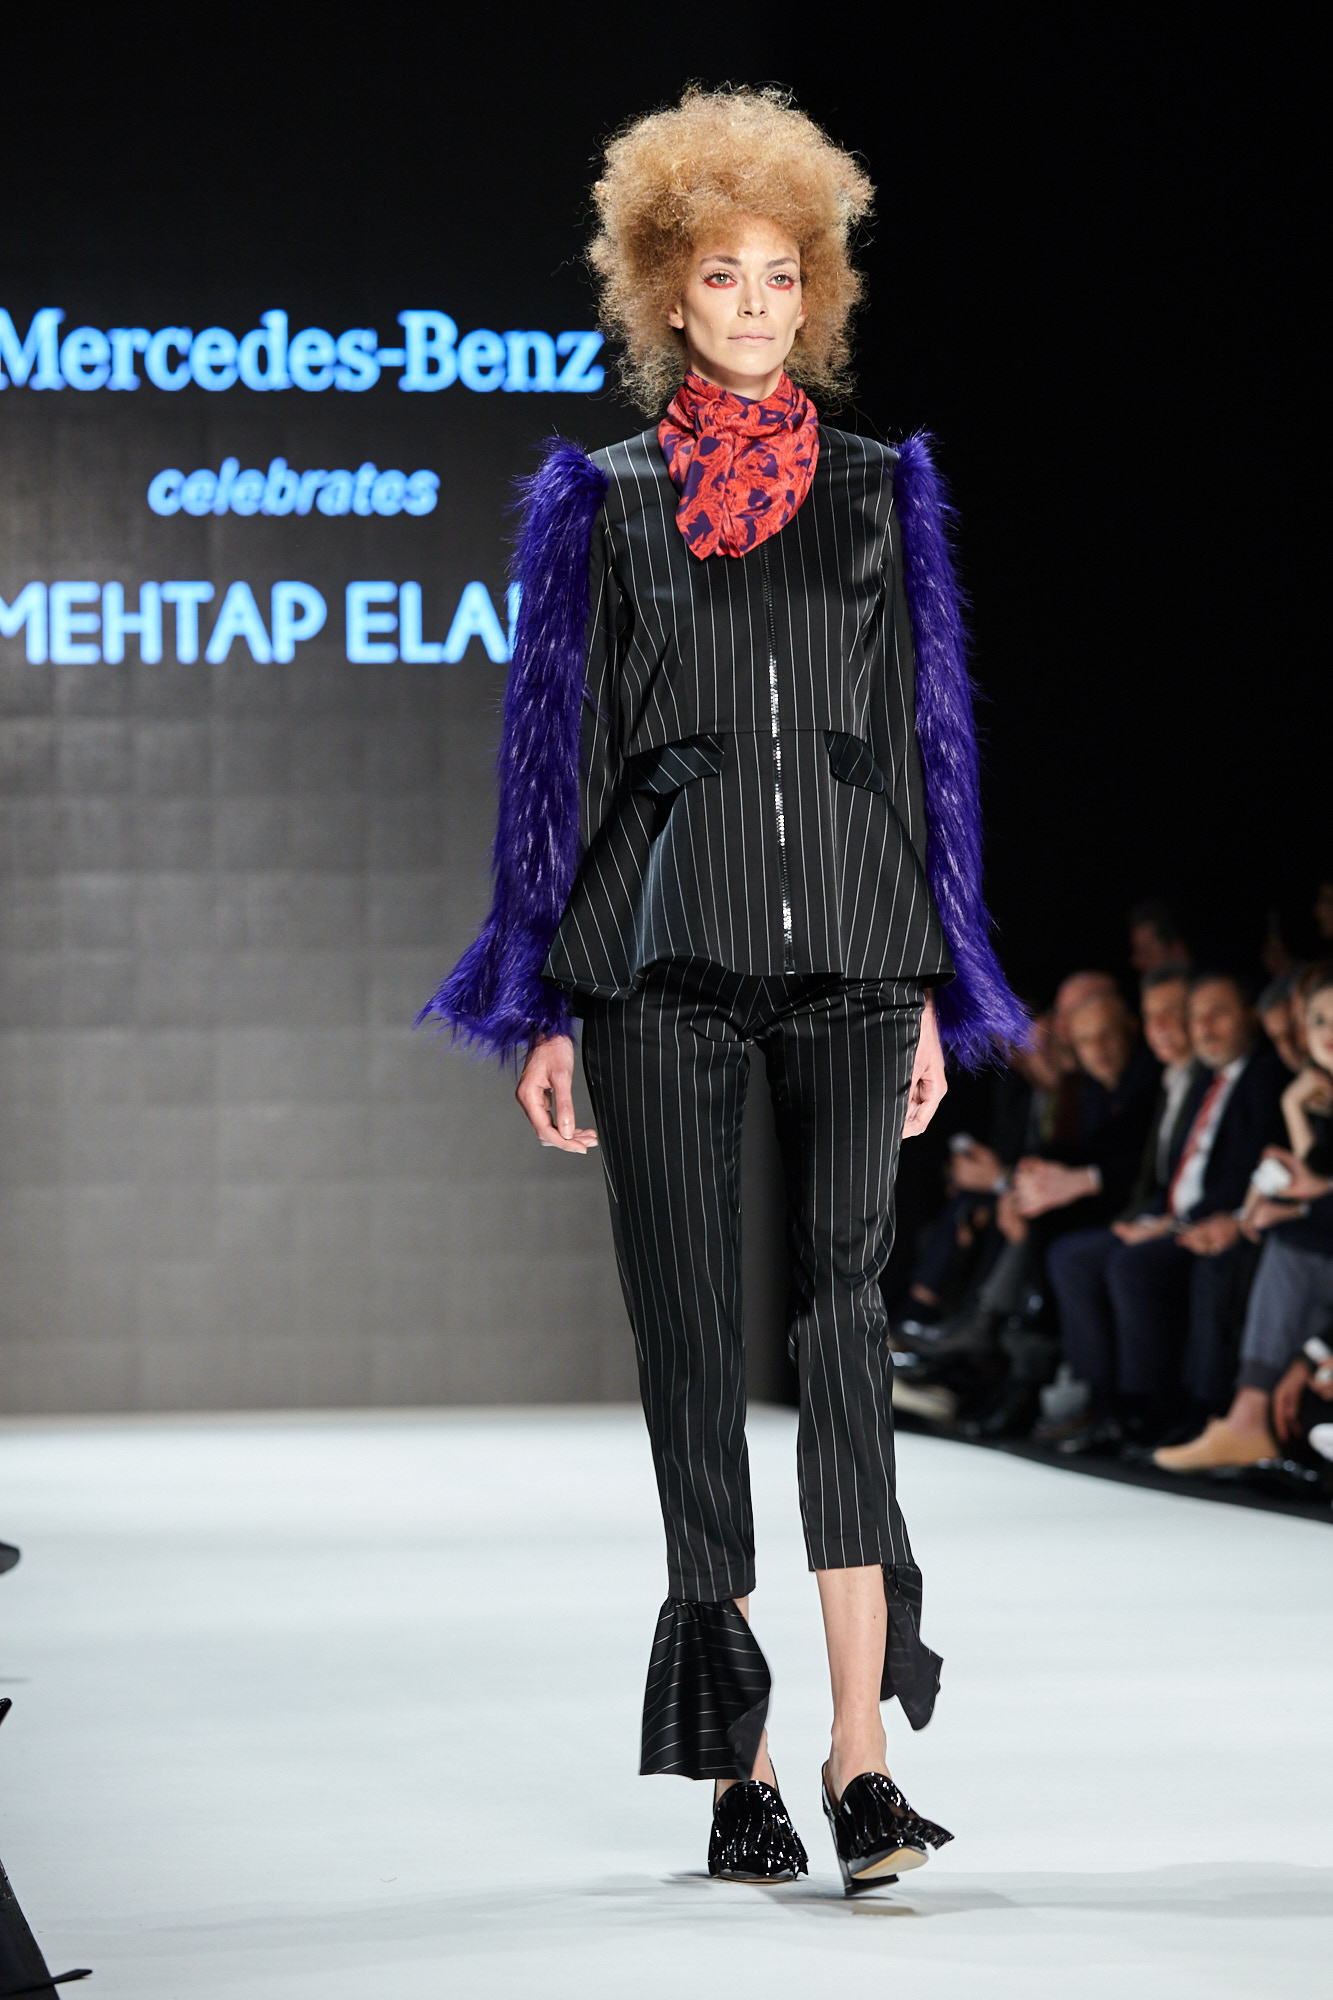 billur saatci, street style, mbfwi, off ne giysem, turkish style blogger, mercedes benz fashion week istanbul, mehtap elaidi, mercedes benz celebrates mehtap elaidi,